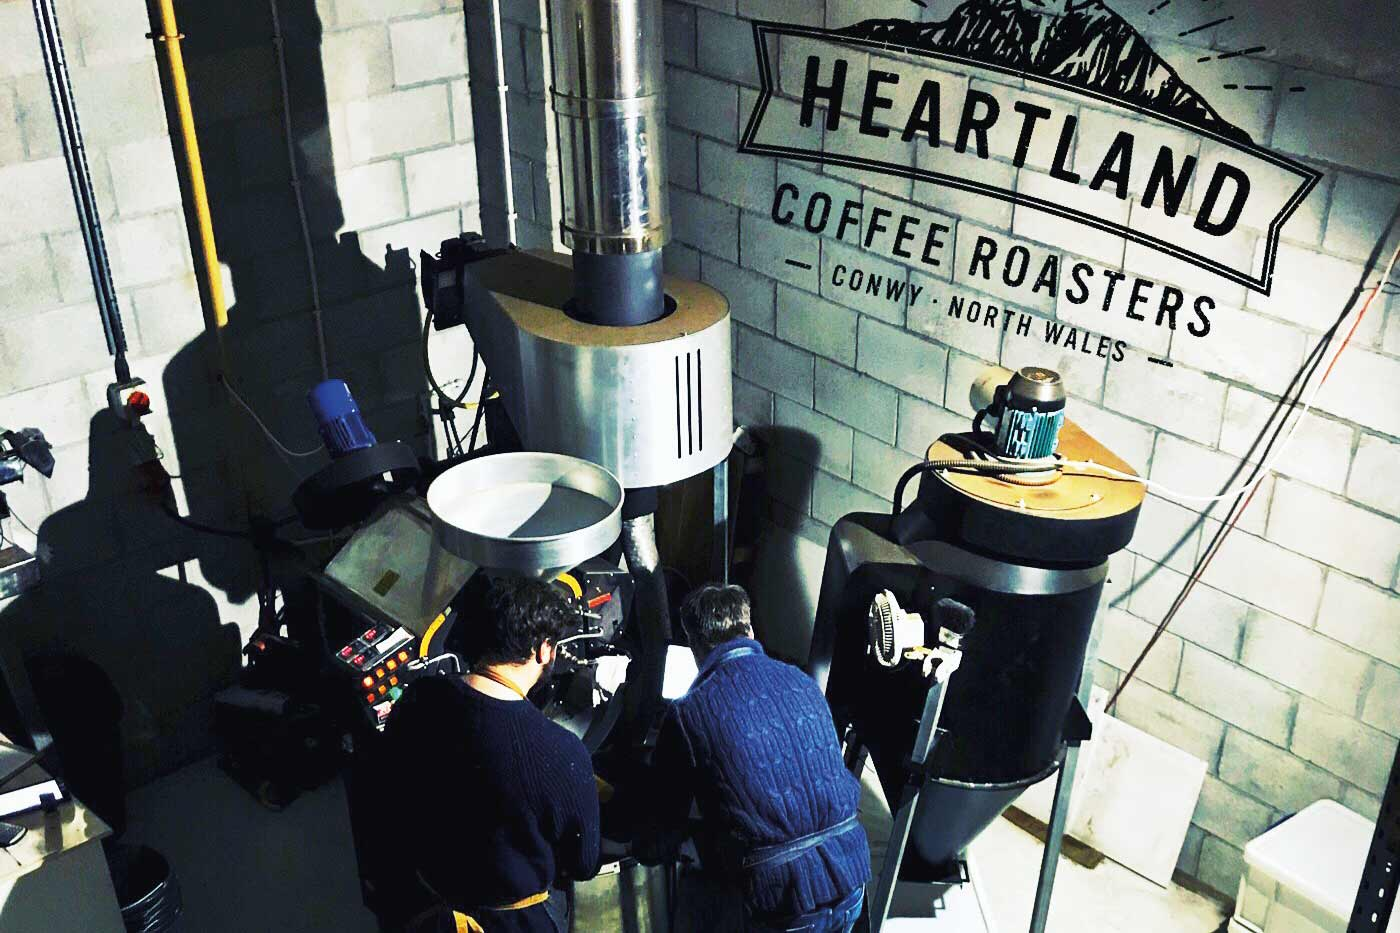 Heartland coffee roasters